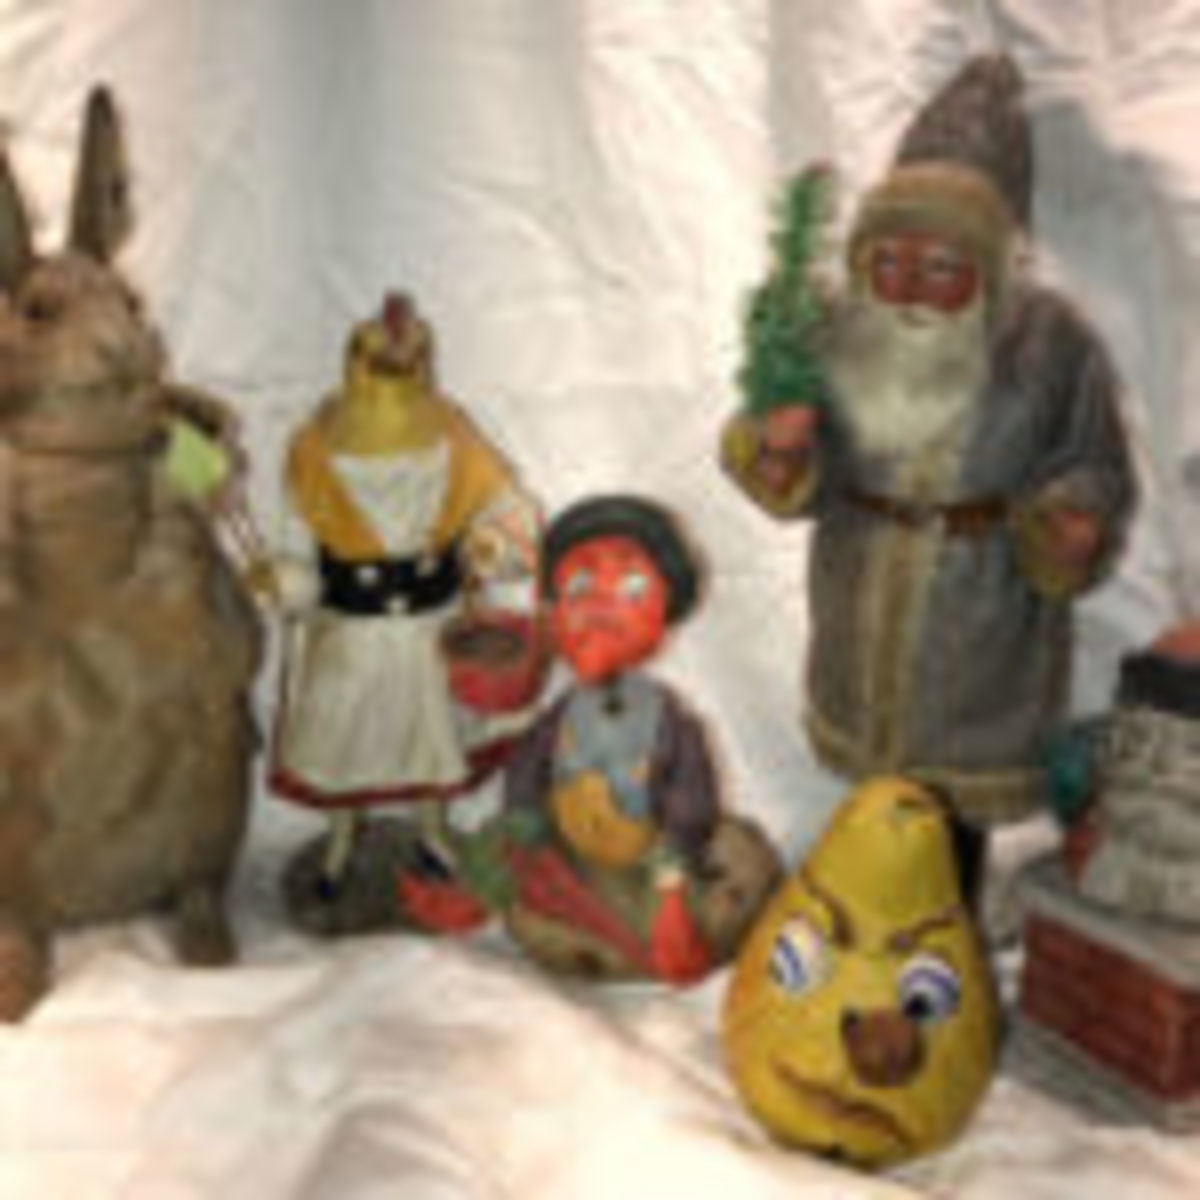 Scott Tagliapietra of Scott's Antiques, Whitefish Bay, WI (well-known holiday, doll and toy dealer) collects antique candy containers, particularly circa 1910 German papier-mâché examples. Here are just of few of the pieces he will share at the special exhibit.